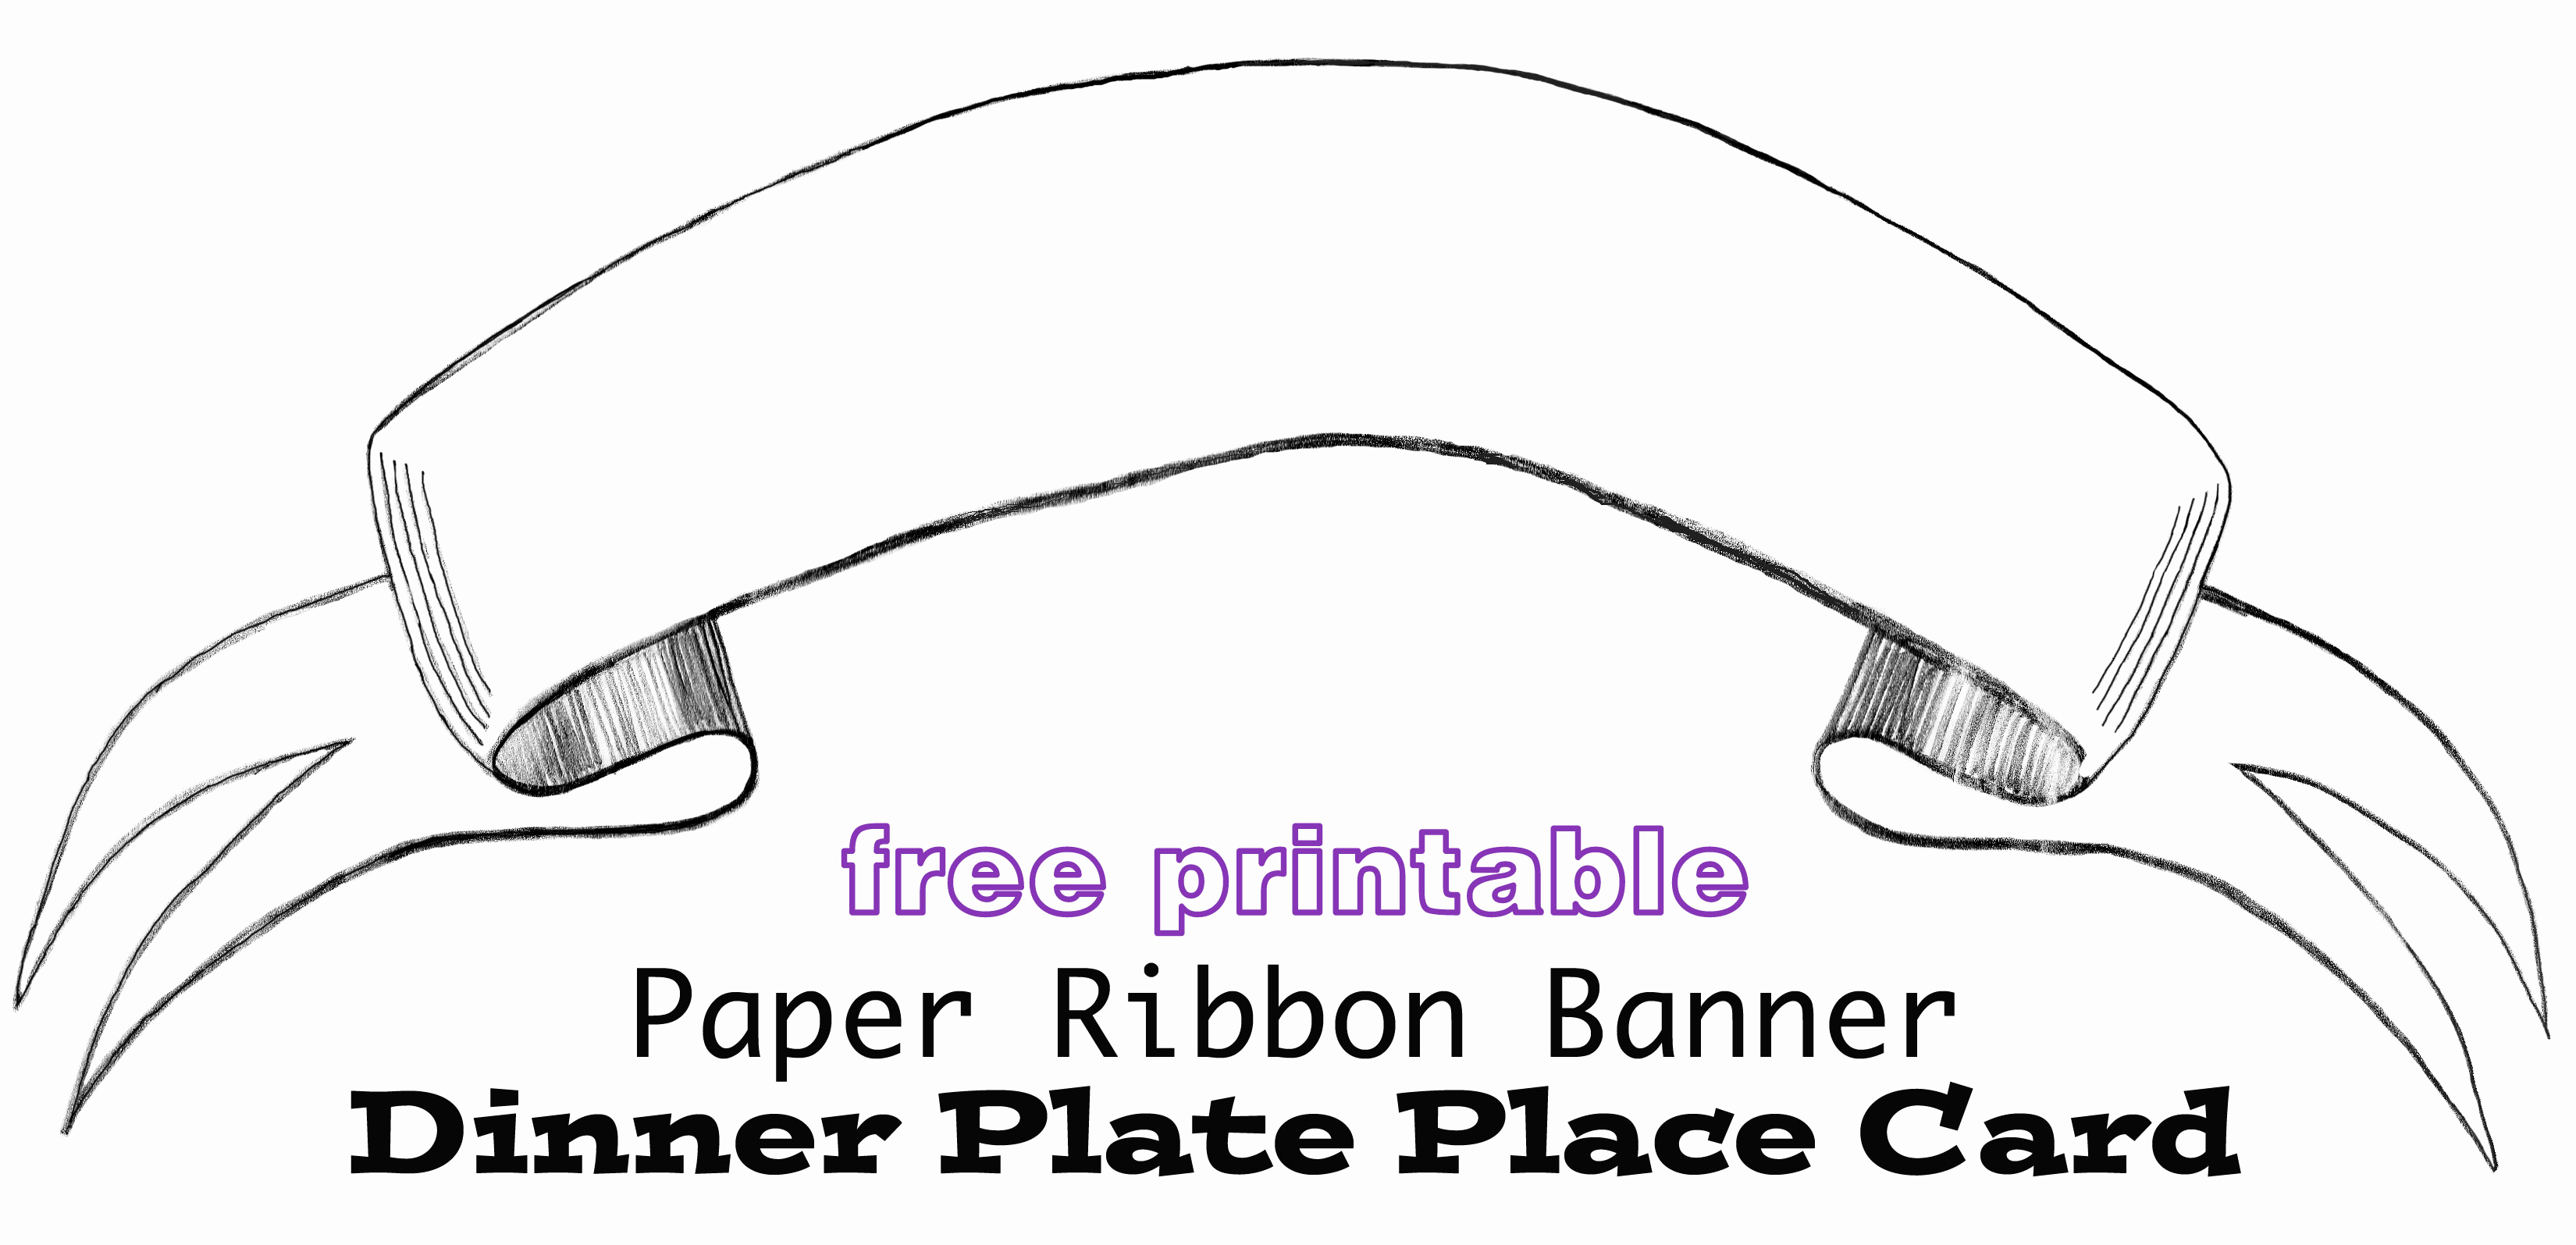 Free Printable Banner Templates Elegant Printable Paper Banner Dinner Plate Place Card In My Own